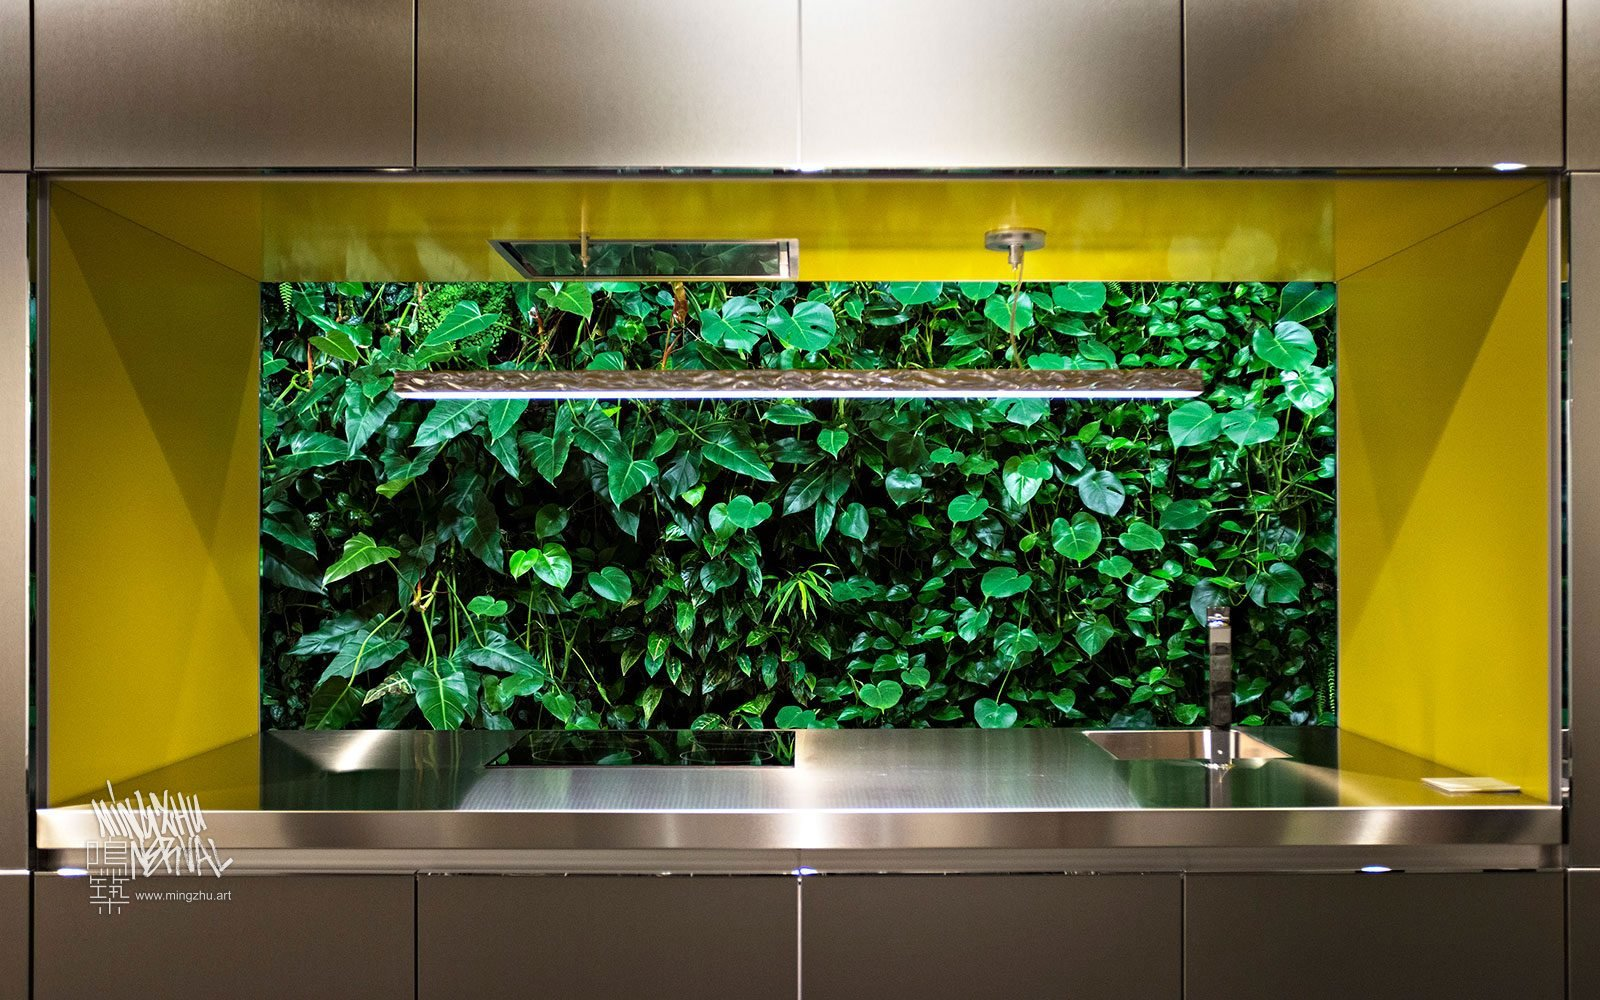 At Mingzhu Nerval, we thrive at creating the most beautiful vertical gardens in the world. For this luxury penthouse, we created a sophisticated living wall design – Shanghai, 2010.